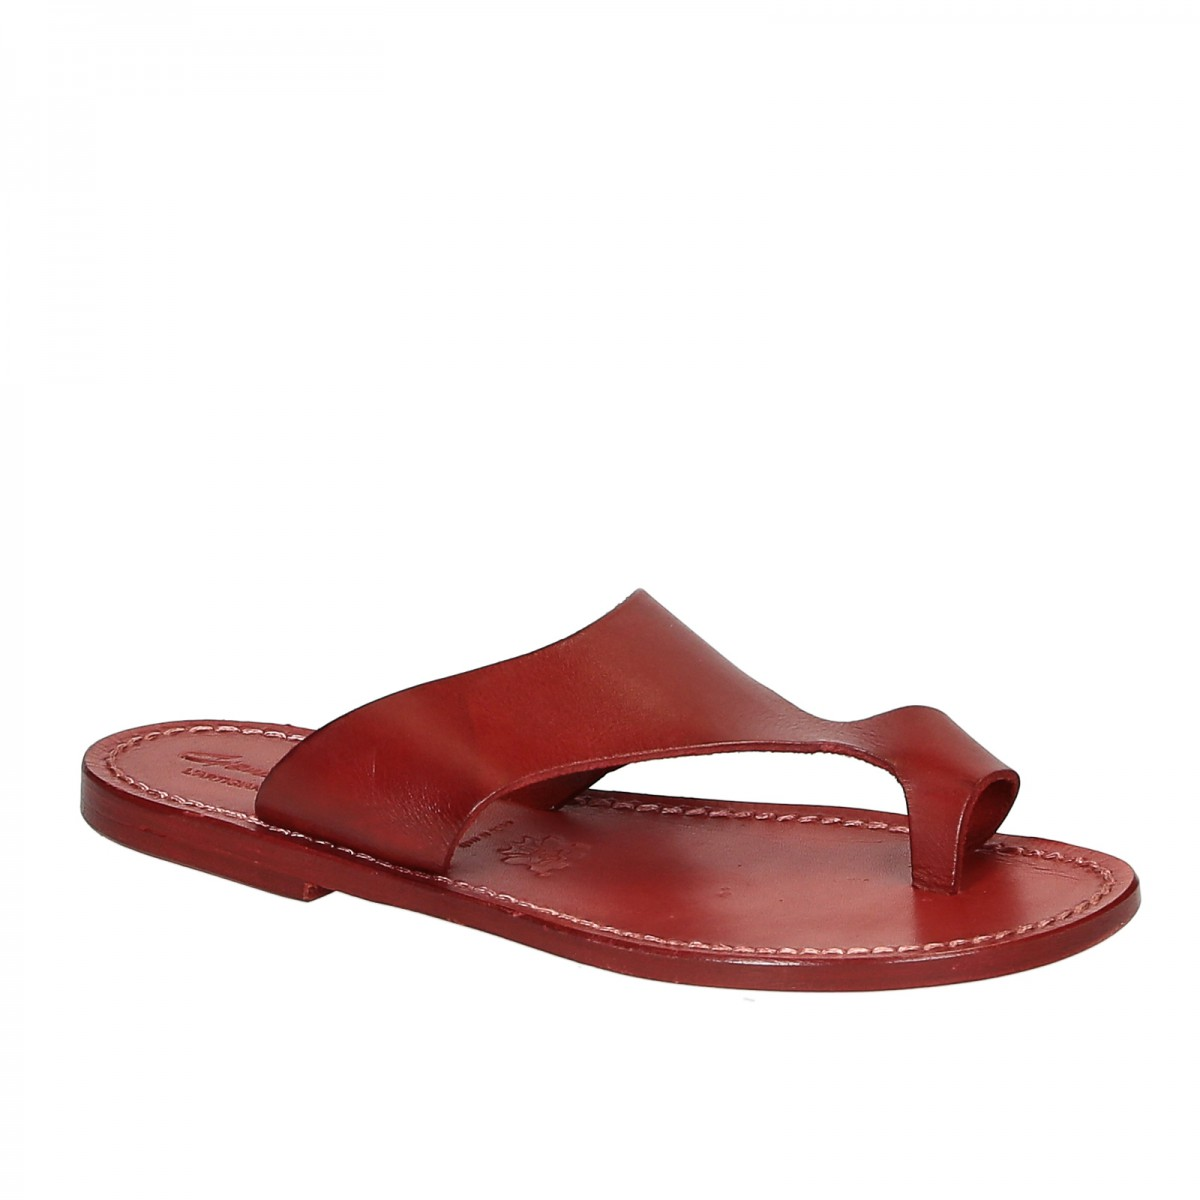 Red leather thong sandals for women